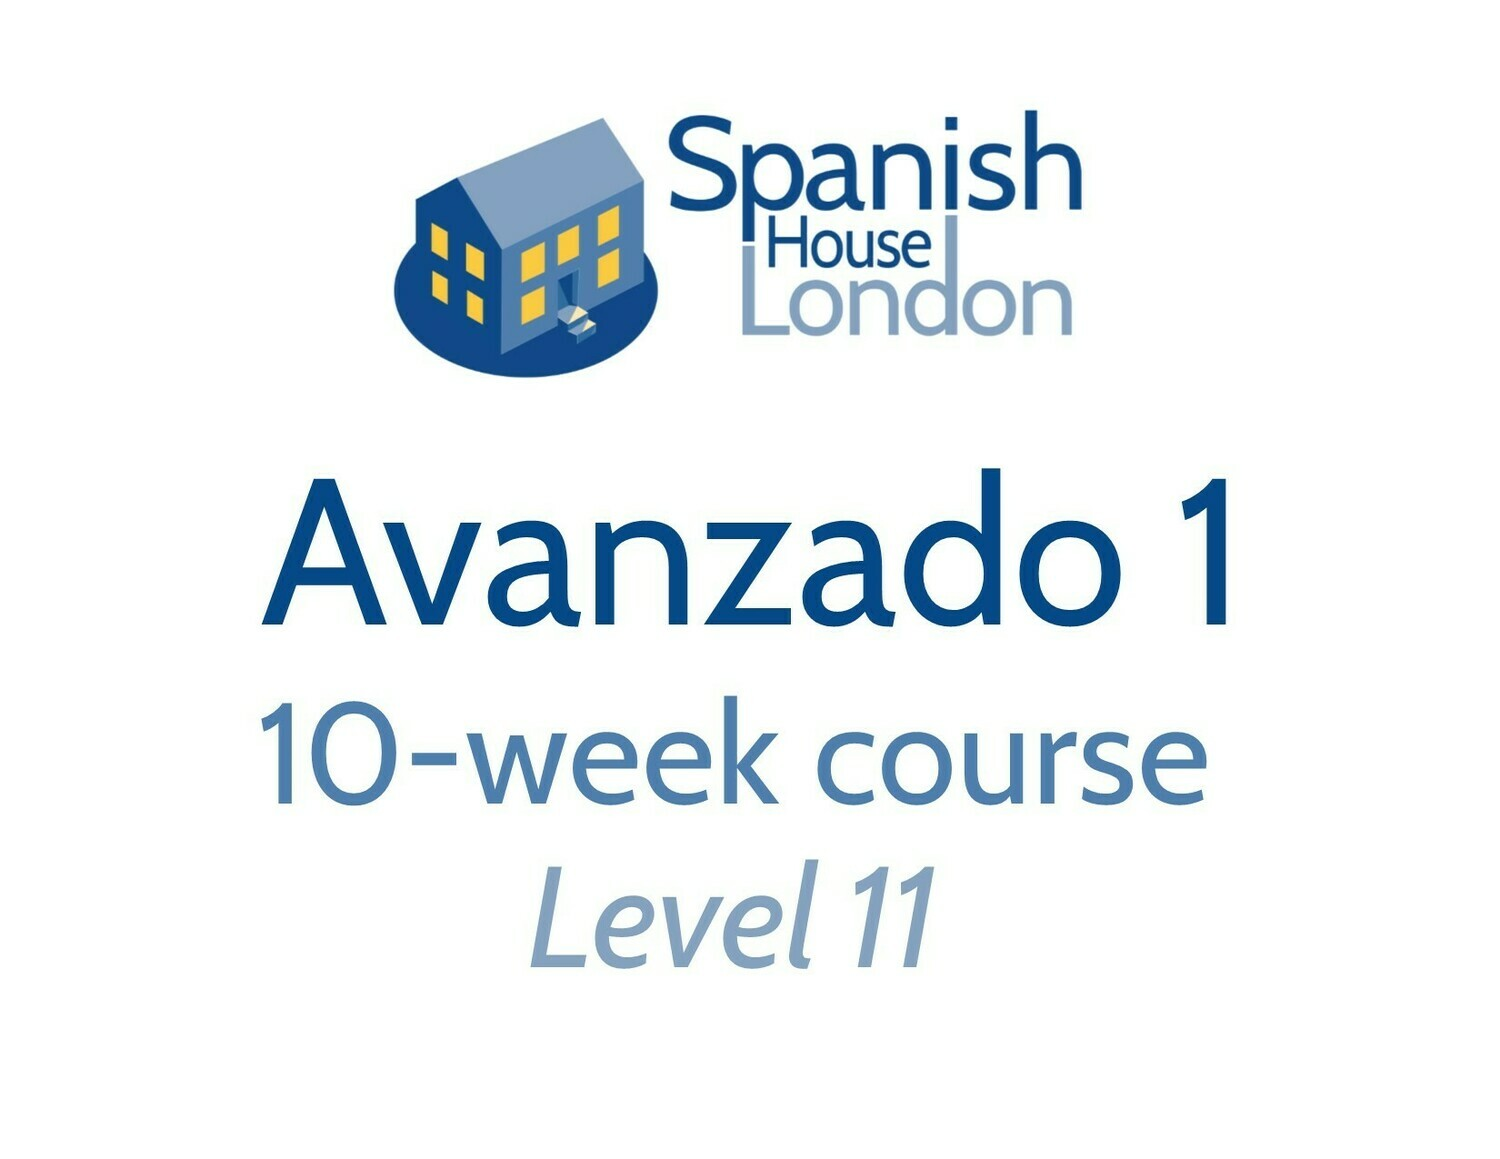 Avanzado 1 Course starting on 10th September at 7.30pm in Clapham North